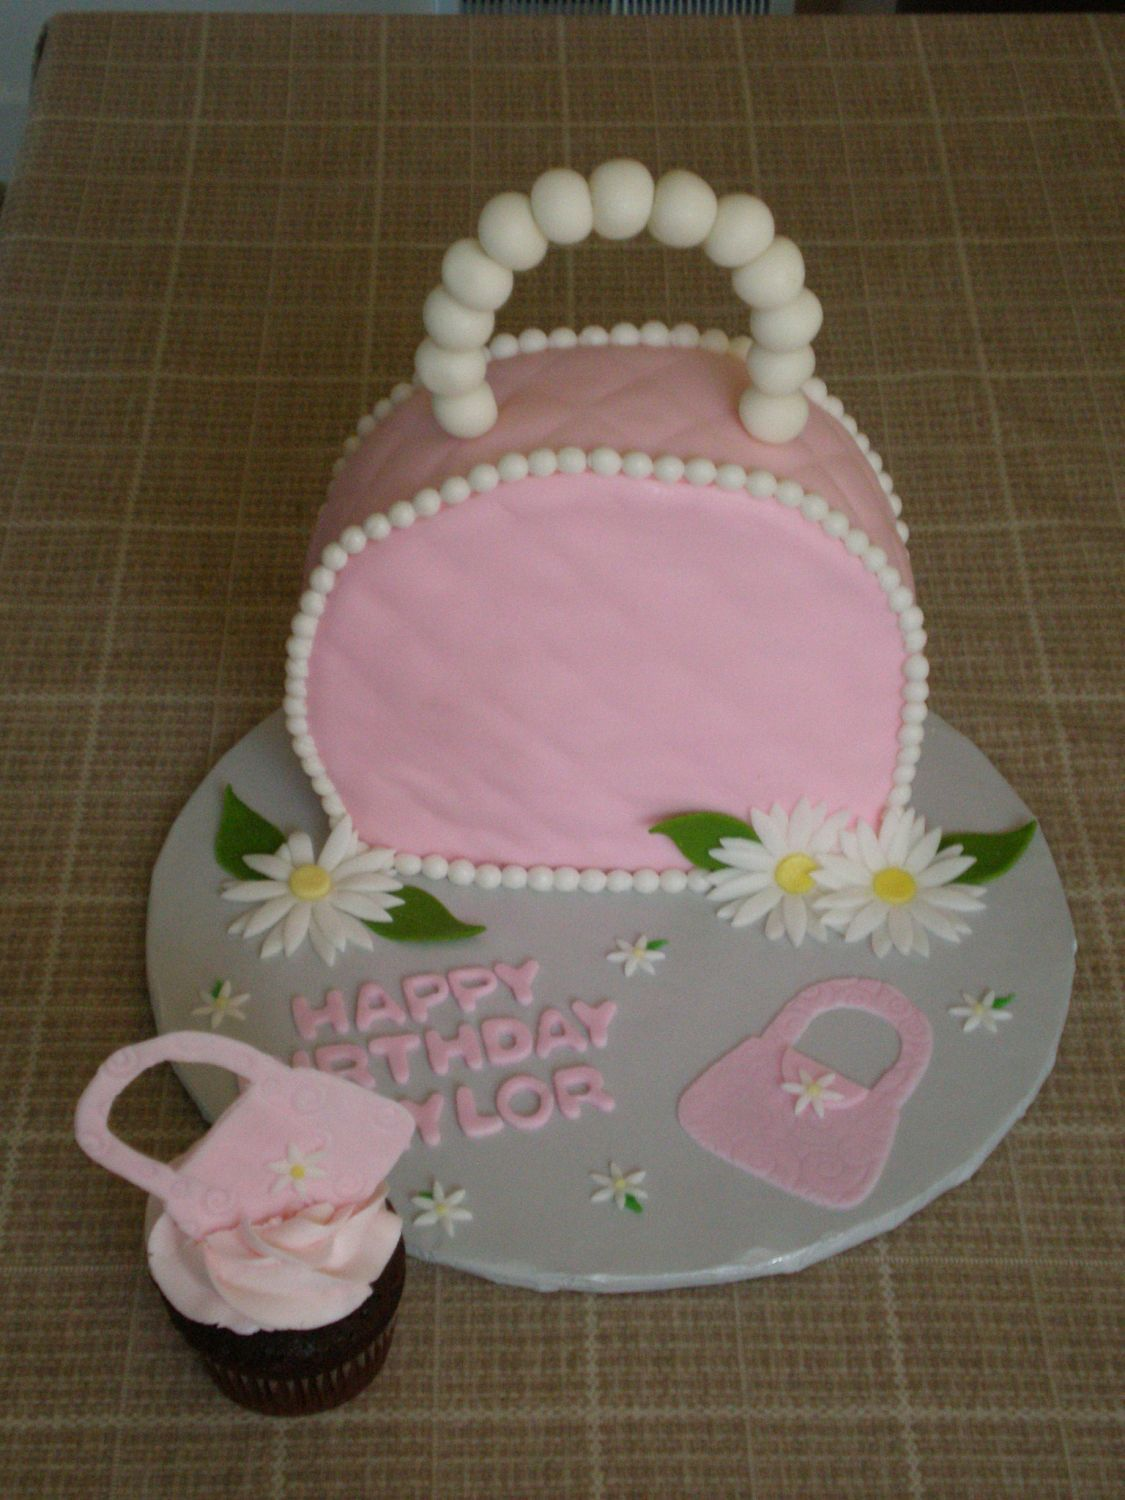 "- 8"" round w/ bottom cut off a little. Cupcakes to match. Little purses mafe from fondant and dried.  The little girl loved it!"